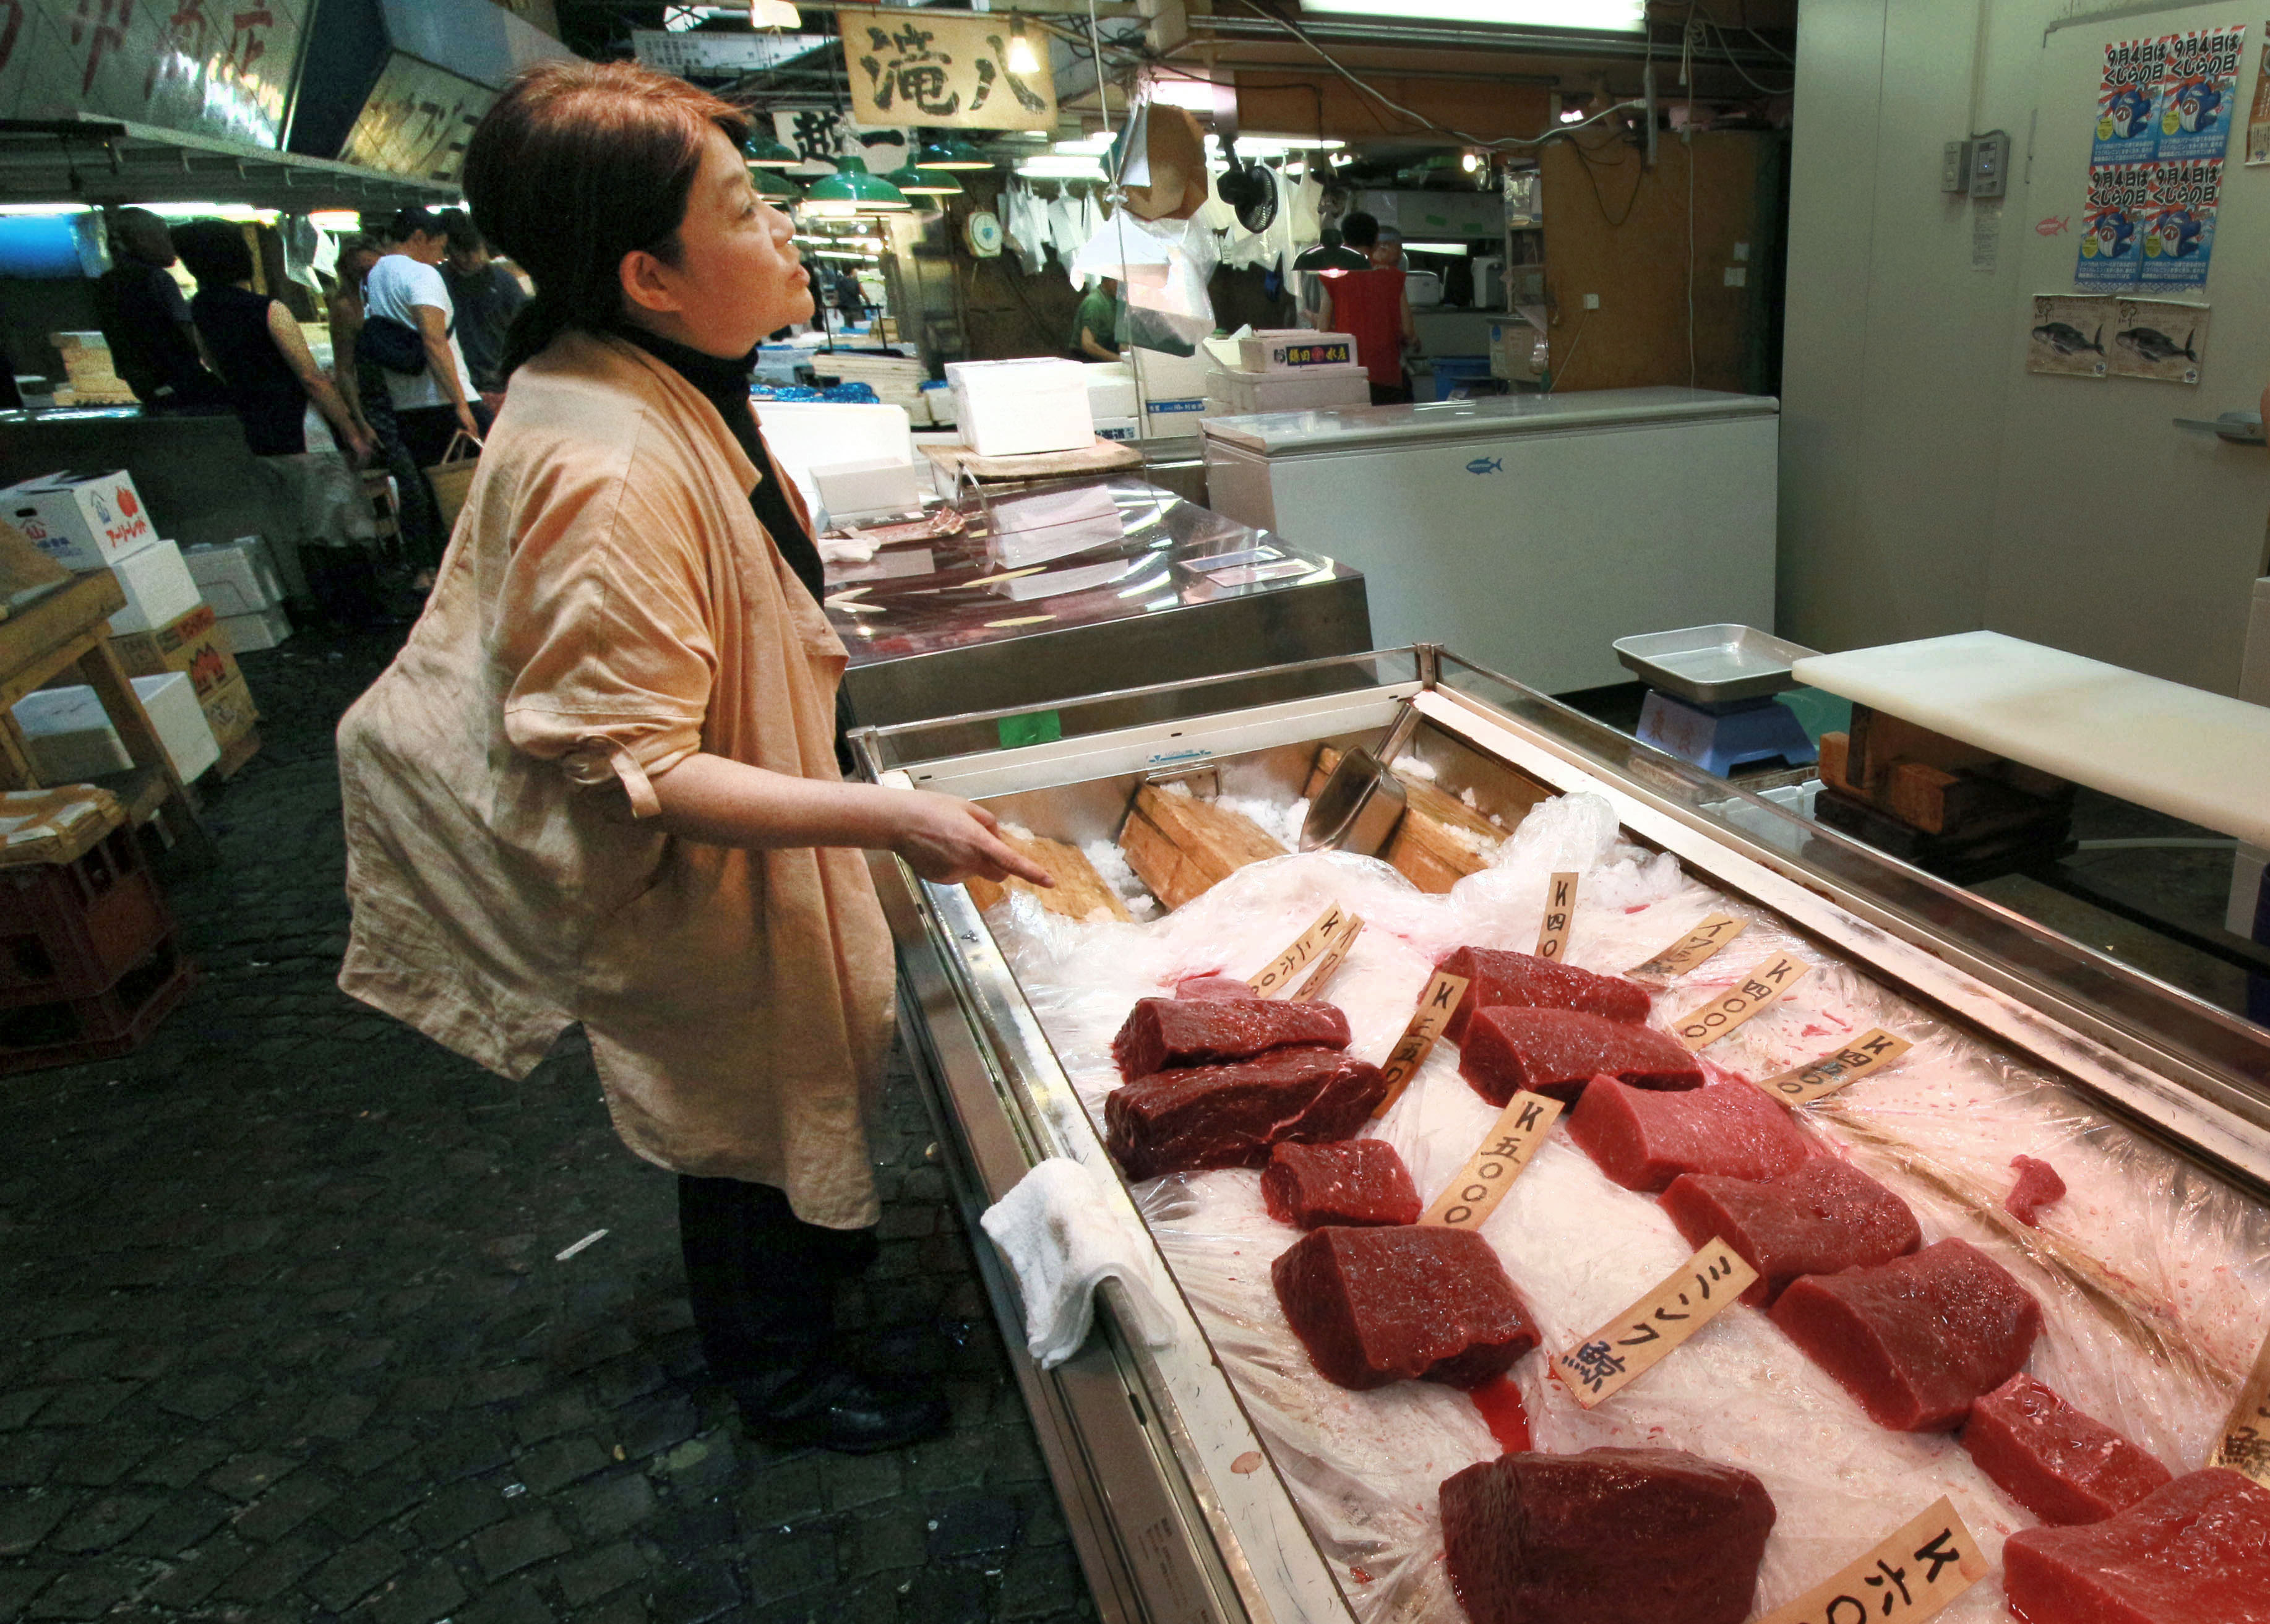 Junko Sakuma visits a store selling whale meat in the Tsukiji fish market in Tokyo on Aug. 5. She says annual consumption in Japan is less than 30 grams per person. | KYODO